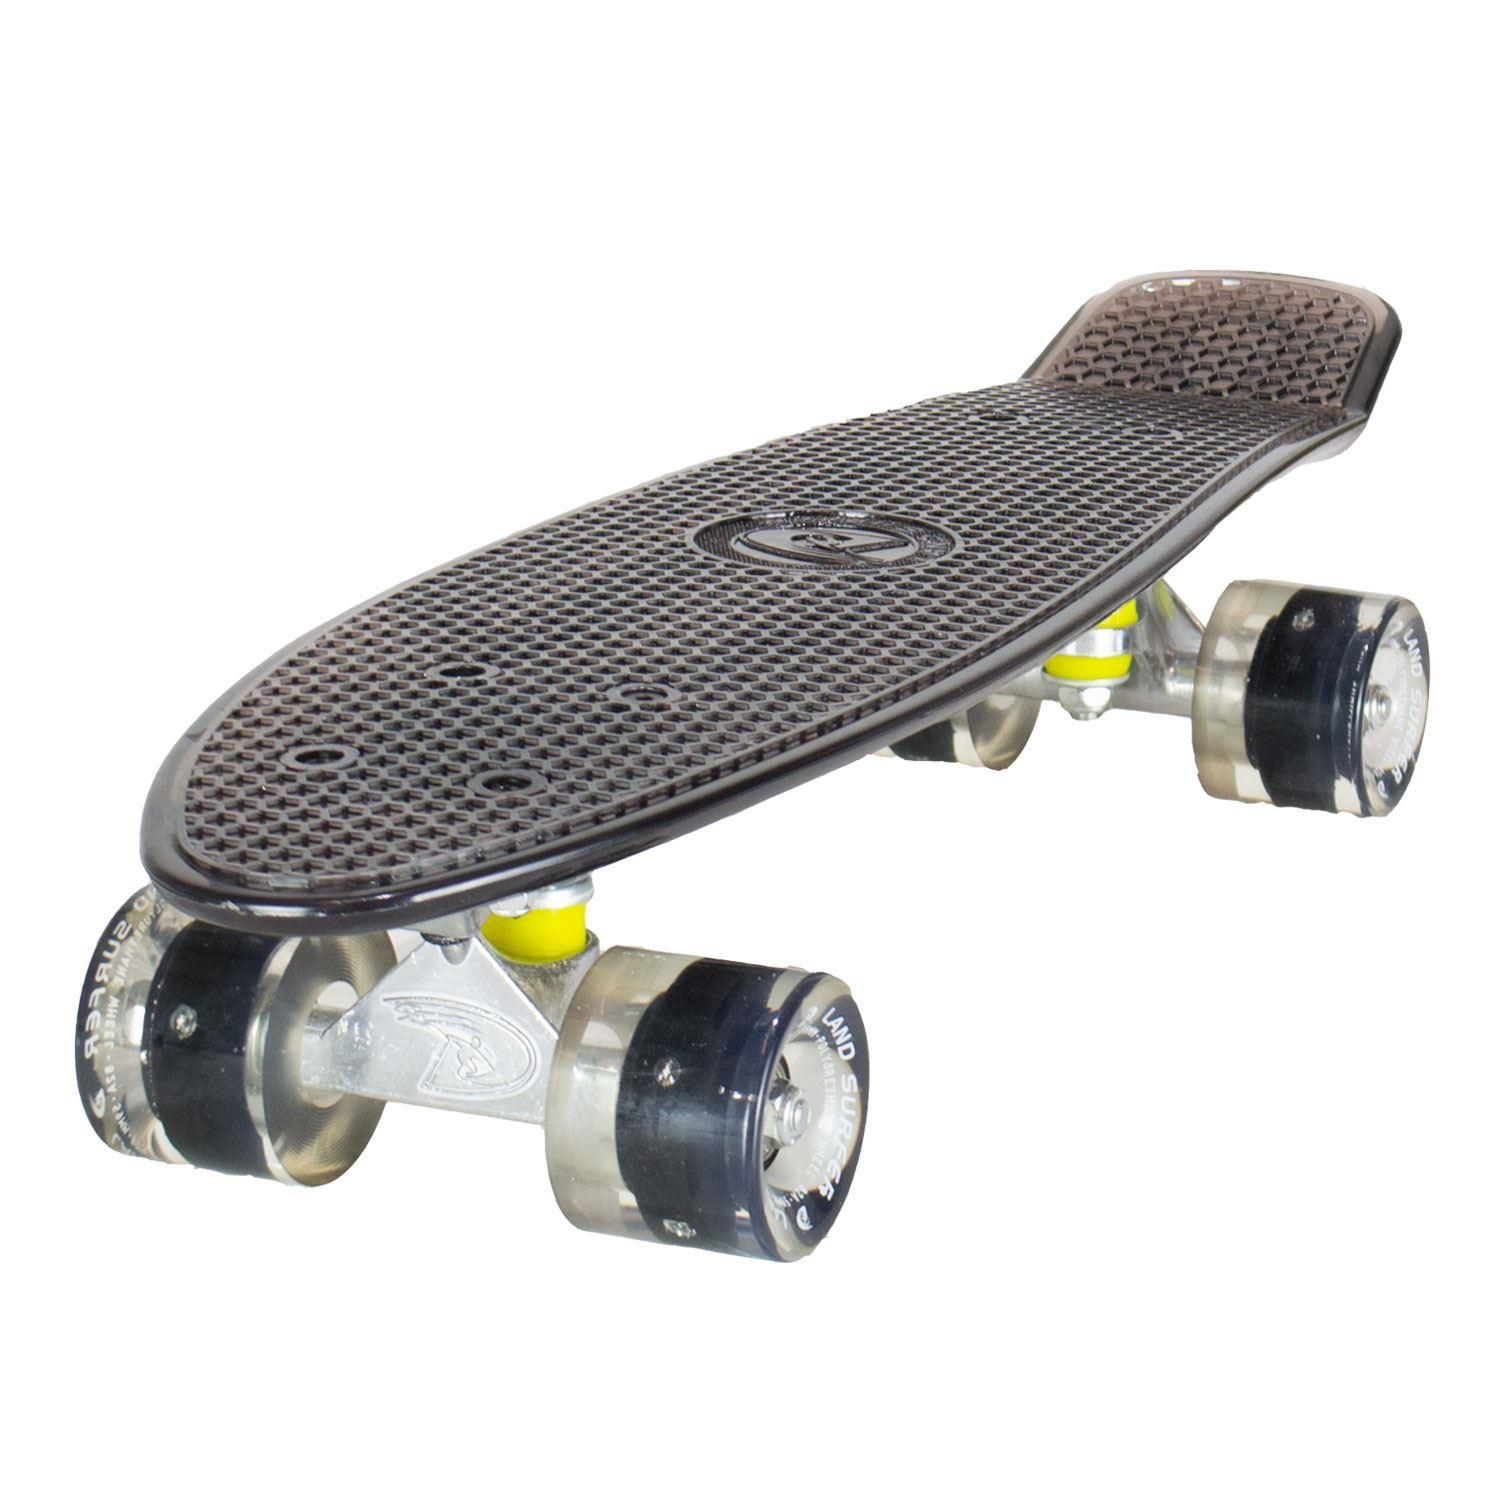 Land Surfer Cruiser Clear Black Skateboard Black LED Wheels